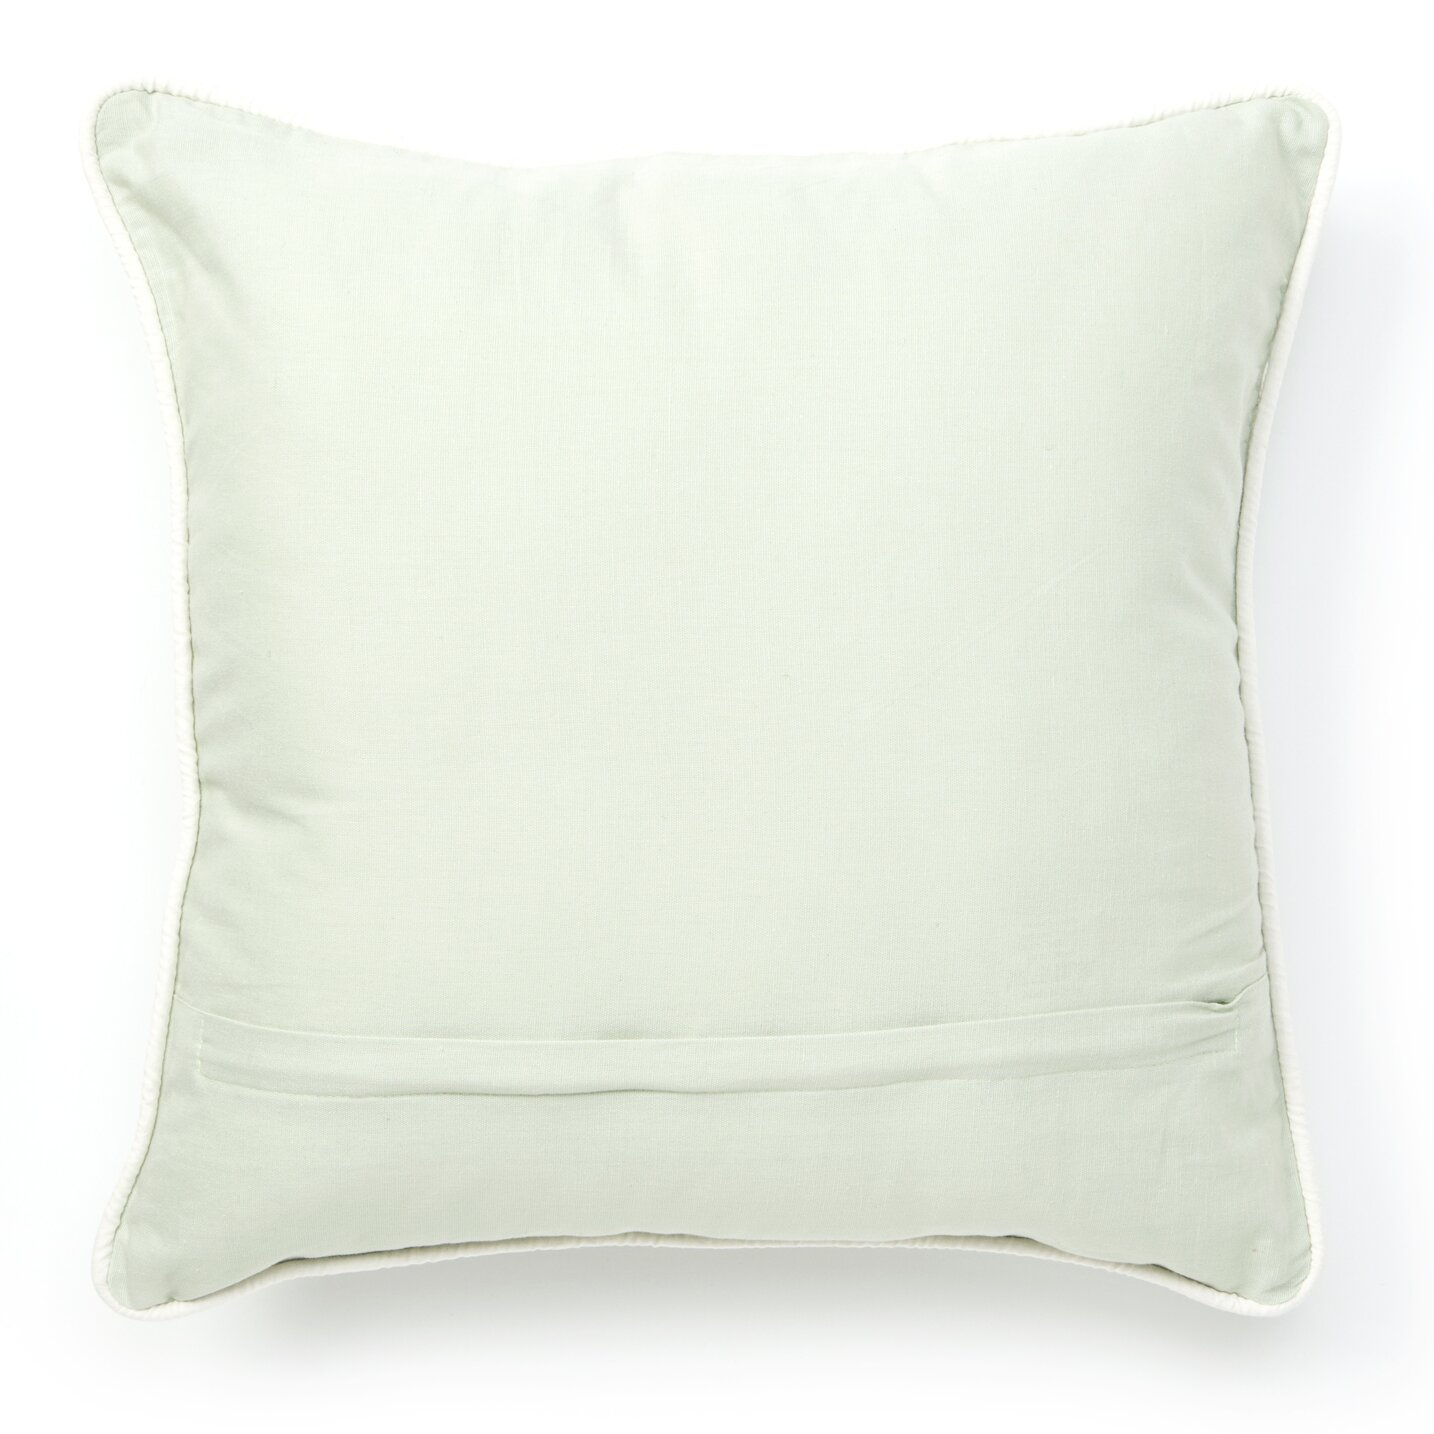 Decorative Pillow Wayfair : Wildon Home Demetra Throw Pillow Wayfair